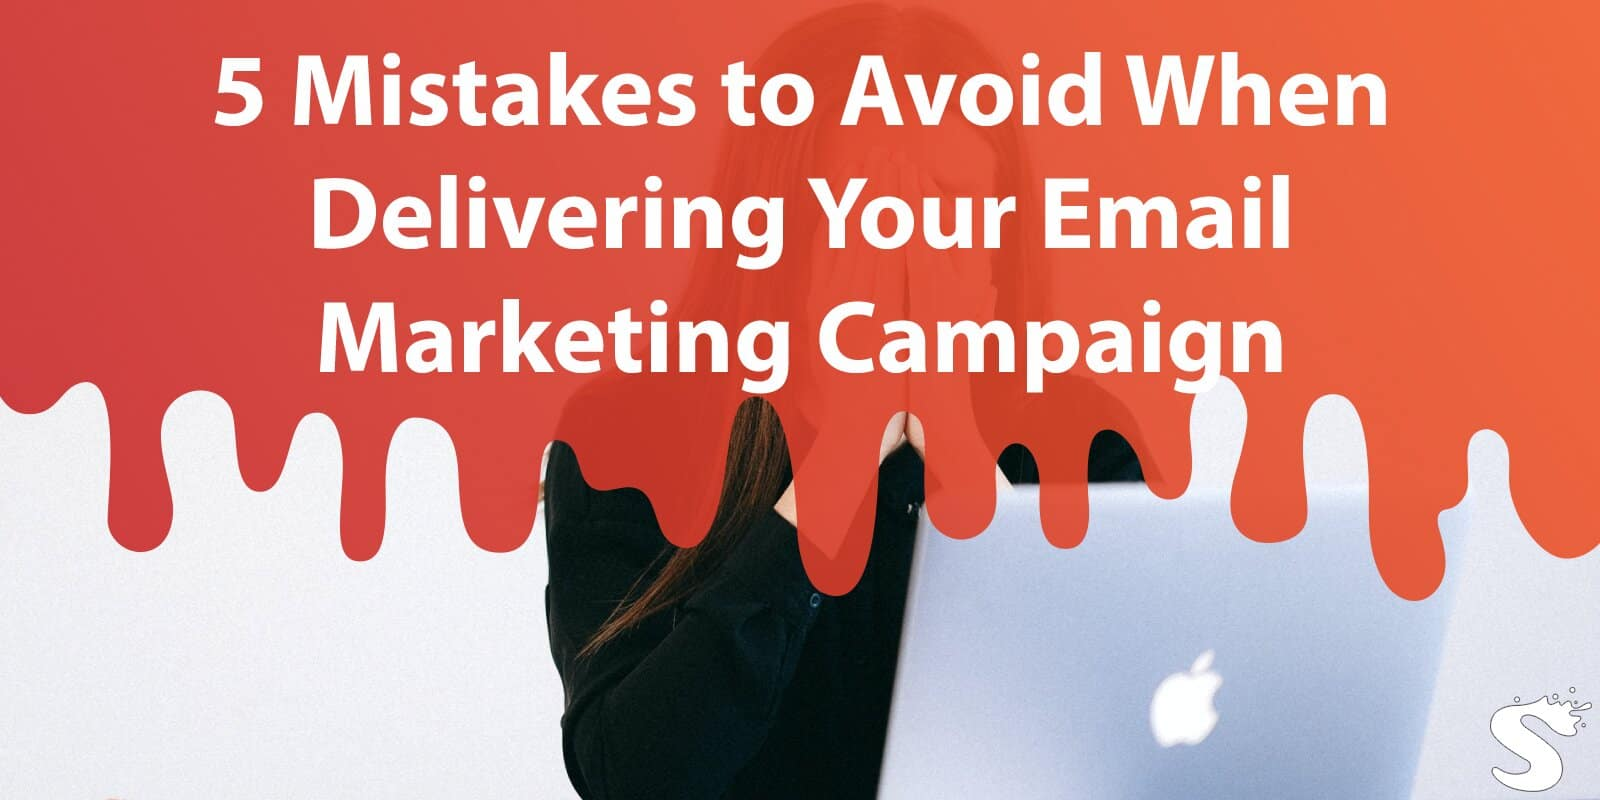 5 Mistakes to Avoid When Delivering Your Email Marketing Campaign